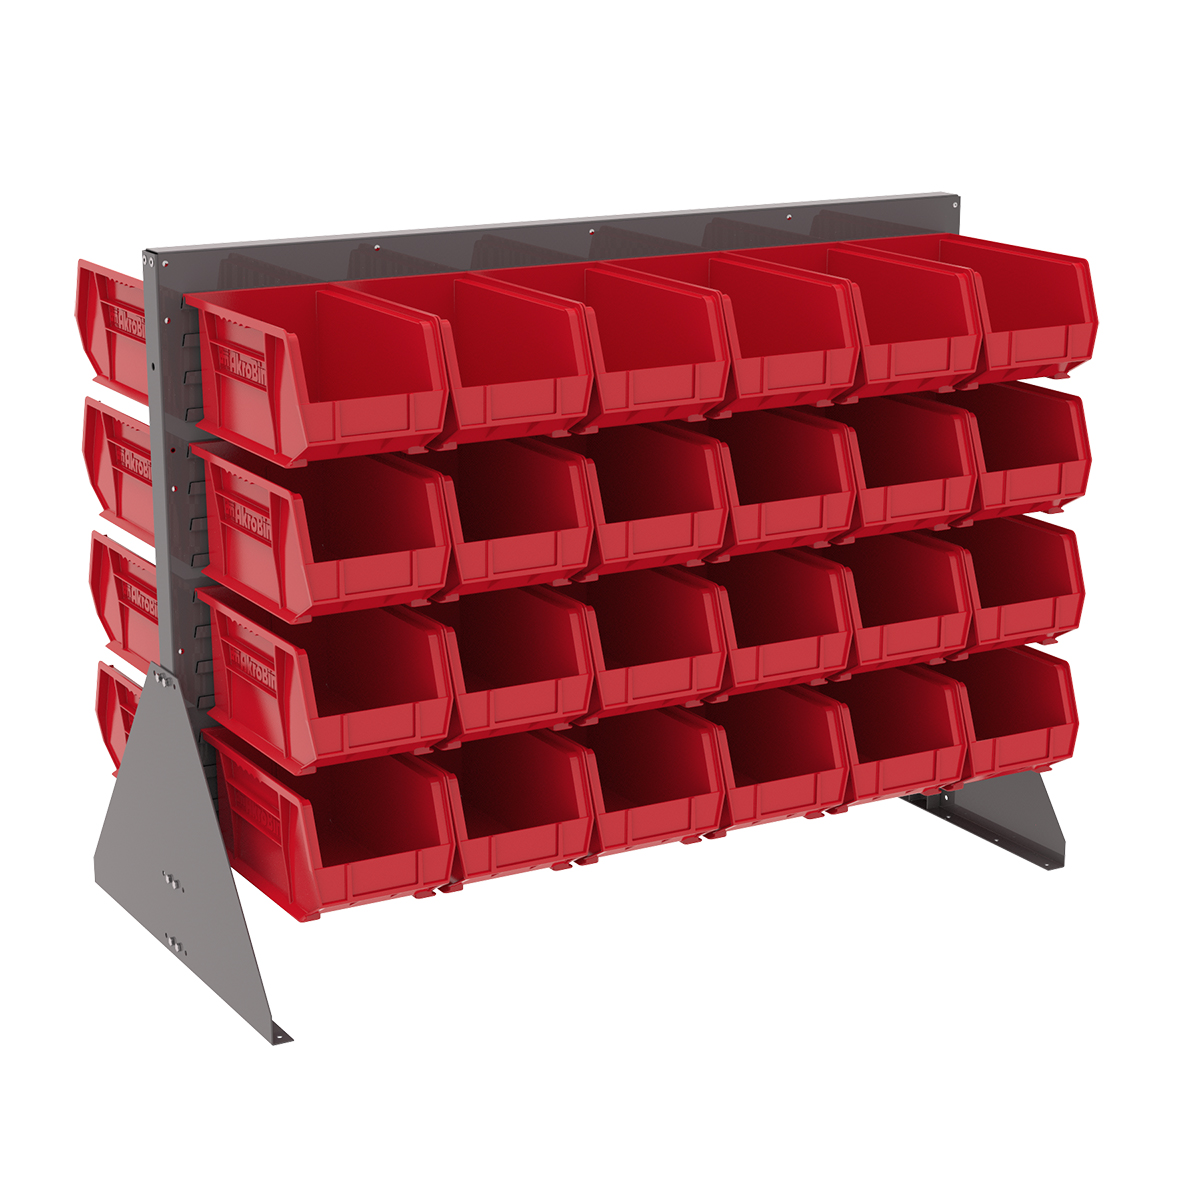 Item DISCONTINUED by Manufacturer.  Low Profile Floor Rack, 2-Sided w/ 48 AkroBins, Gray/Red (30607GY240R).  This item sold in carton quantities of 1.